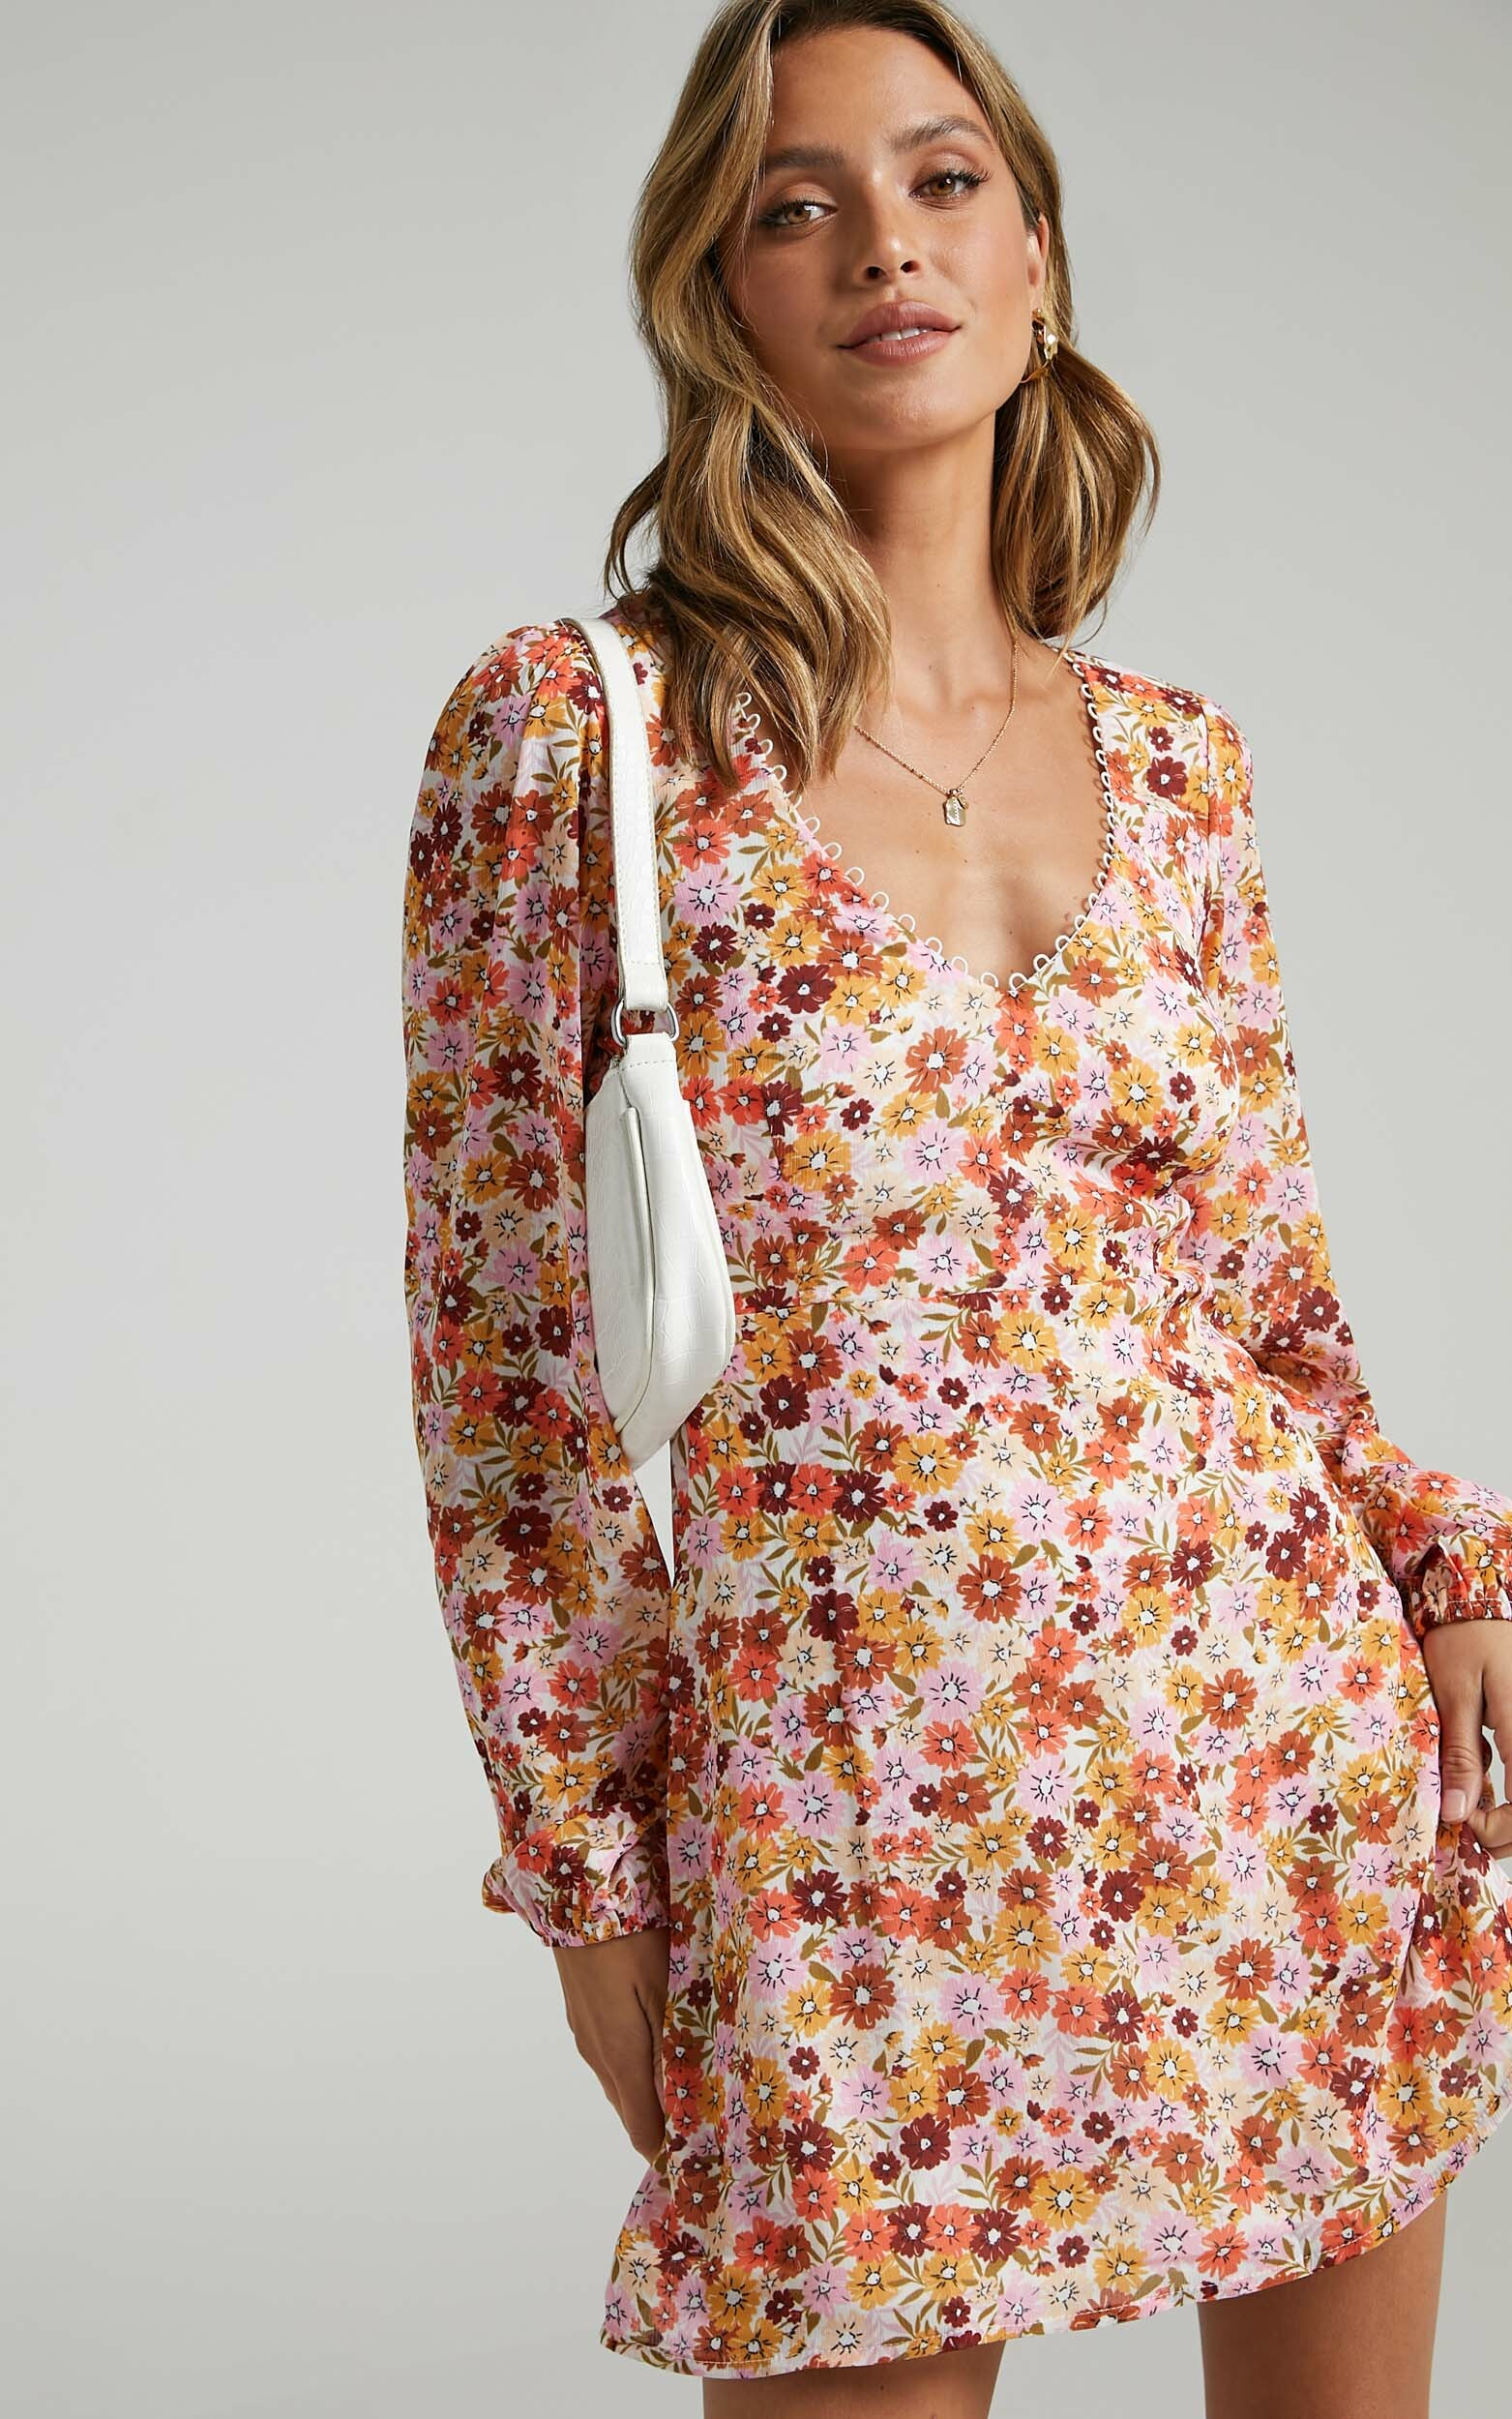 Andrea Long Sleeve Mini Dress in Sahara Ditsy Floral - 06, MLT1, hi-res image number null